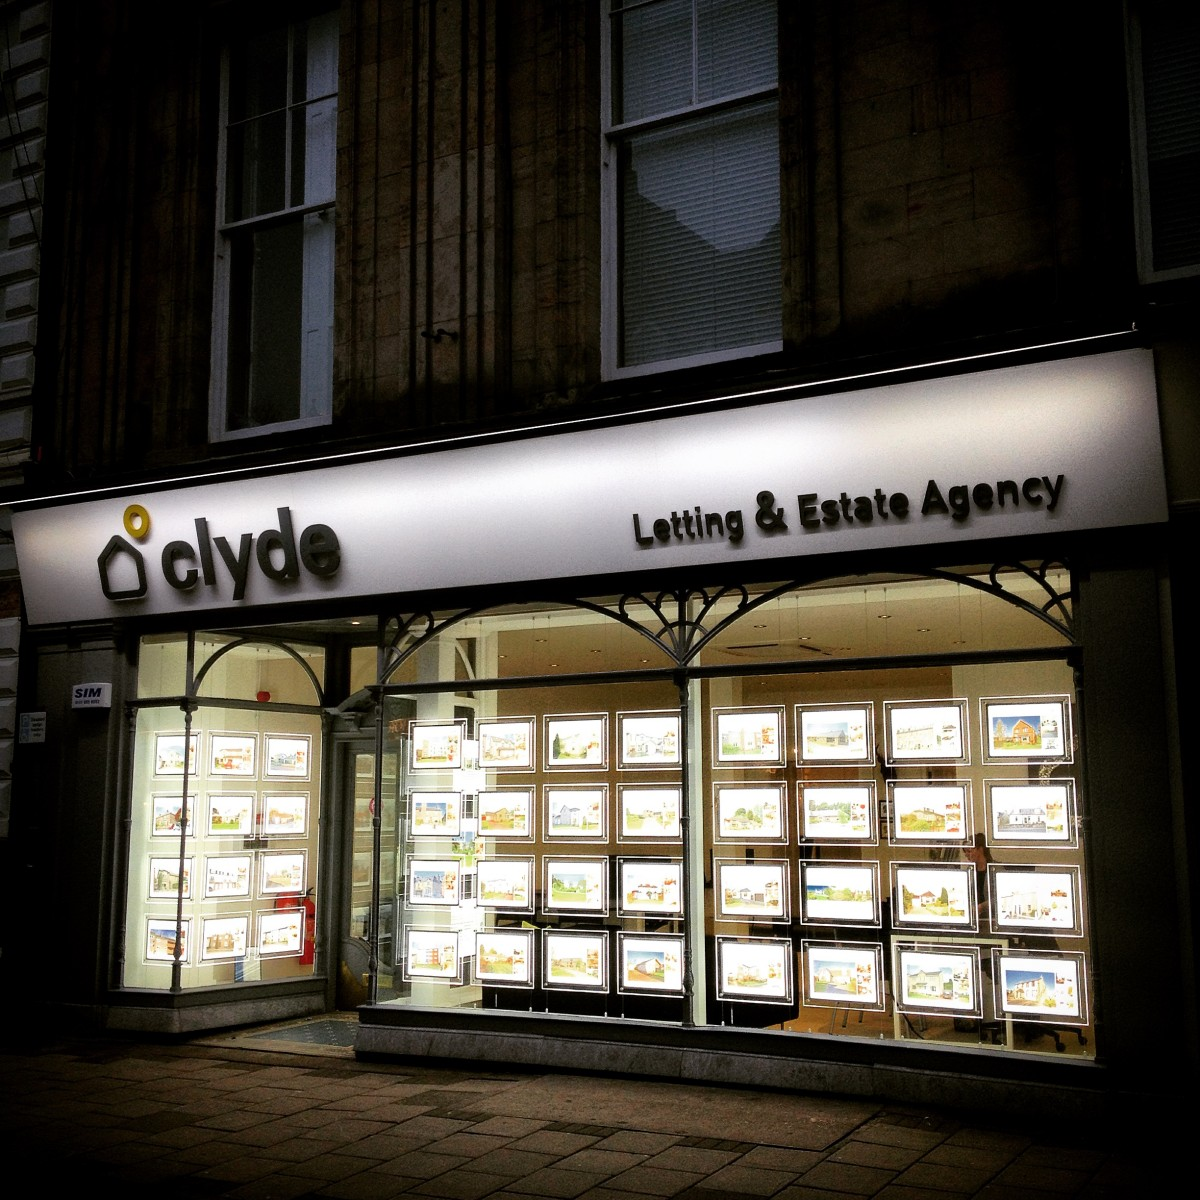 Covering all areas of Perth and Perthshire from their branch in George Street open 7 days a week.